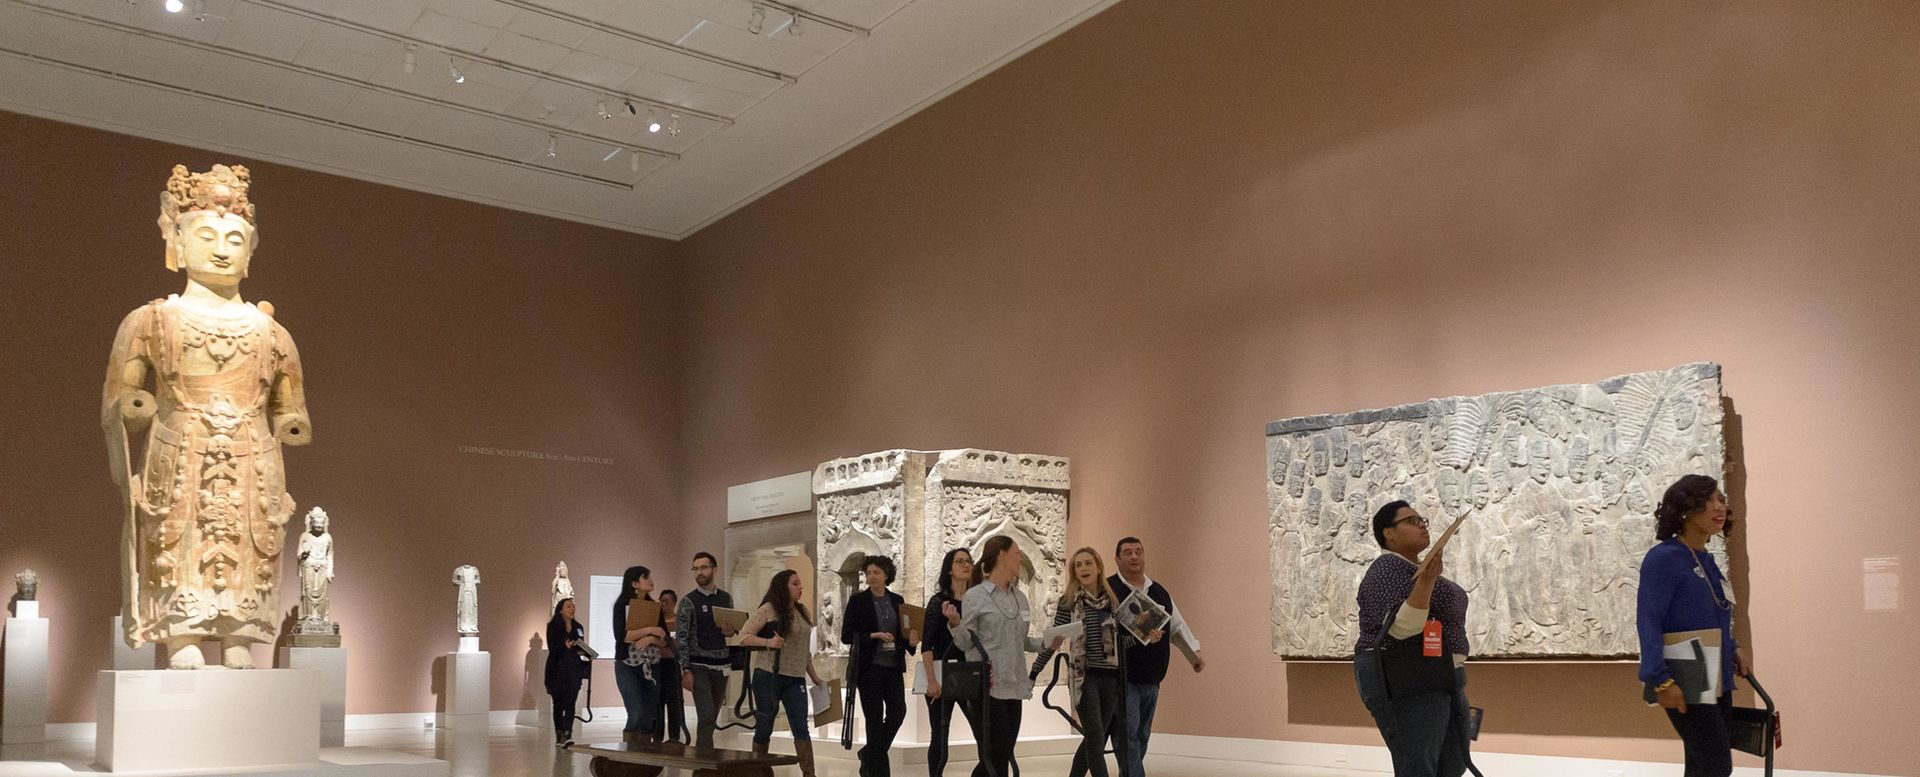 The Met Professional Learning Community - The Metropolitan Museum of Art, New York 2018-05-15 17:01